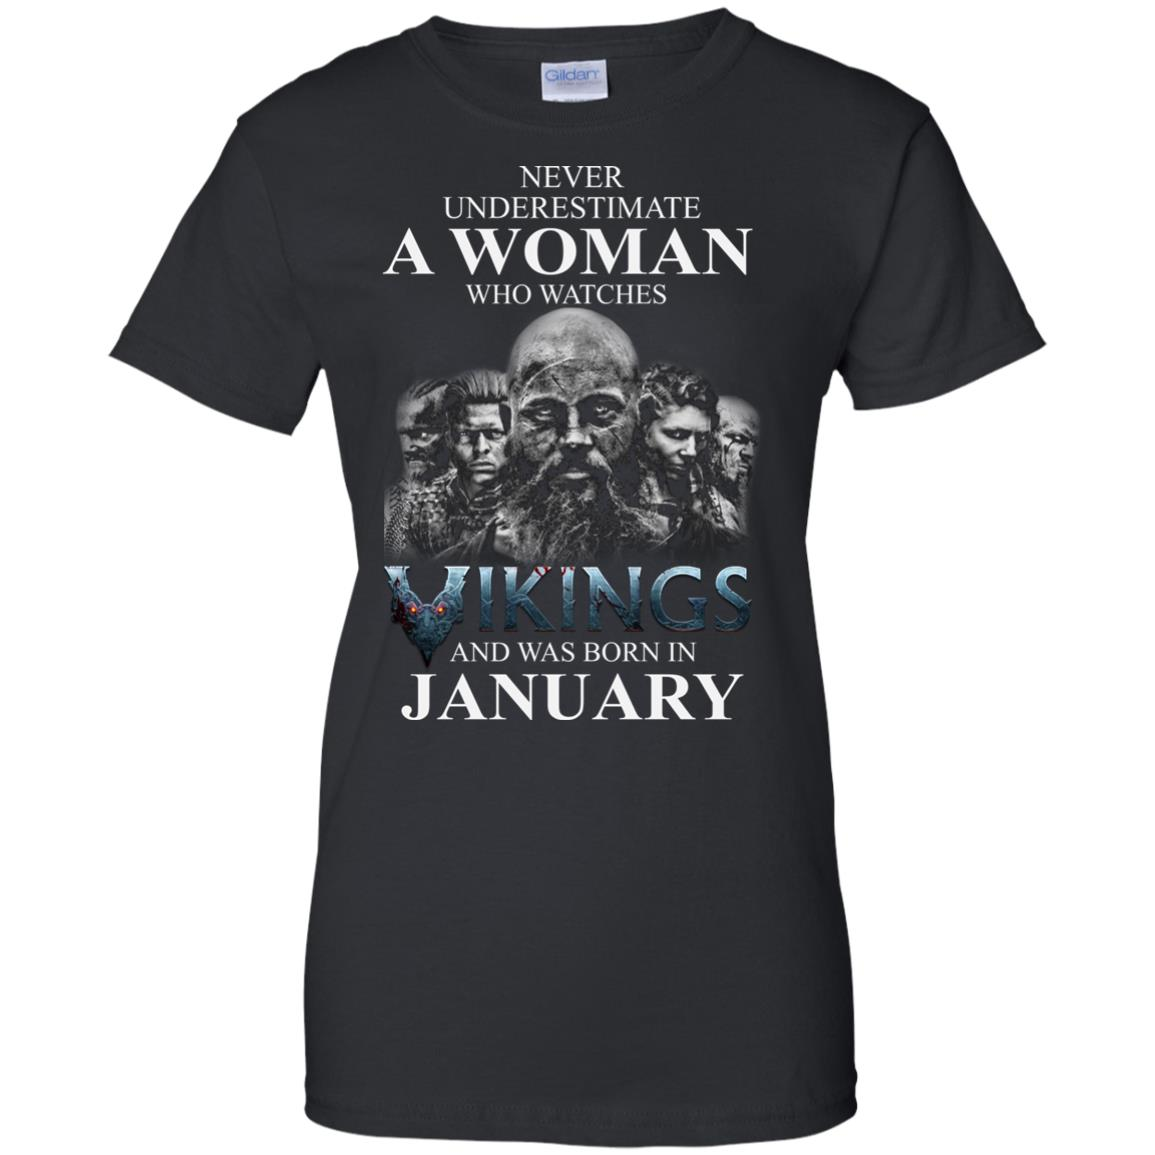 image 1361 - Never Underestimate A woman who watches Vikings and was born in January shirt